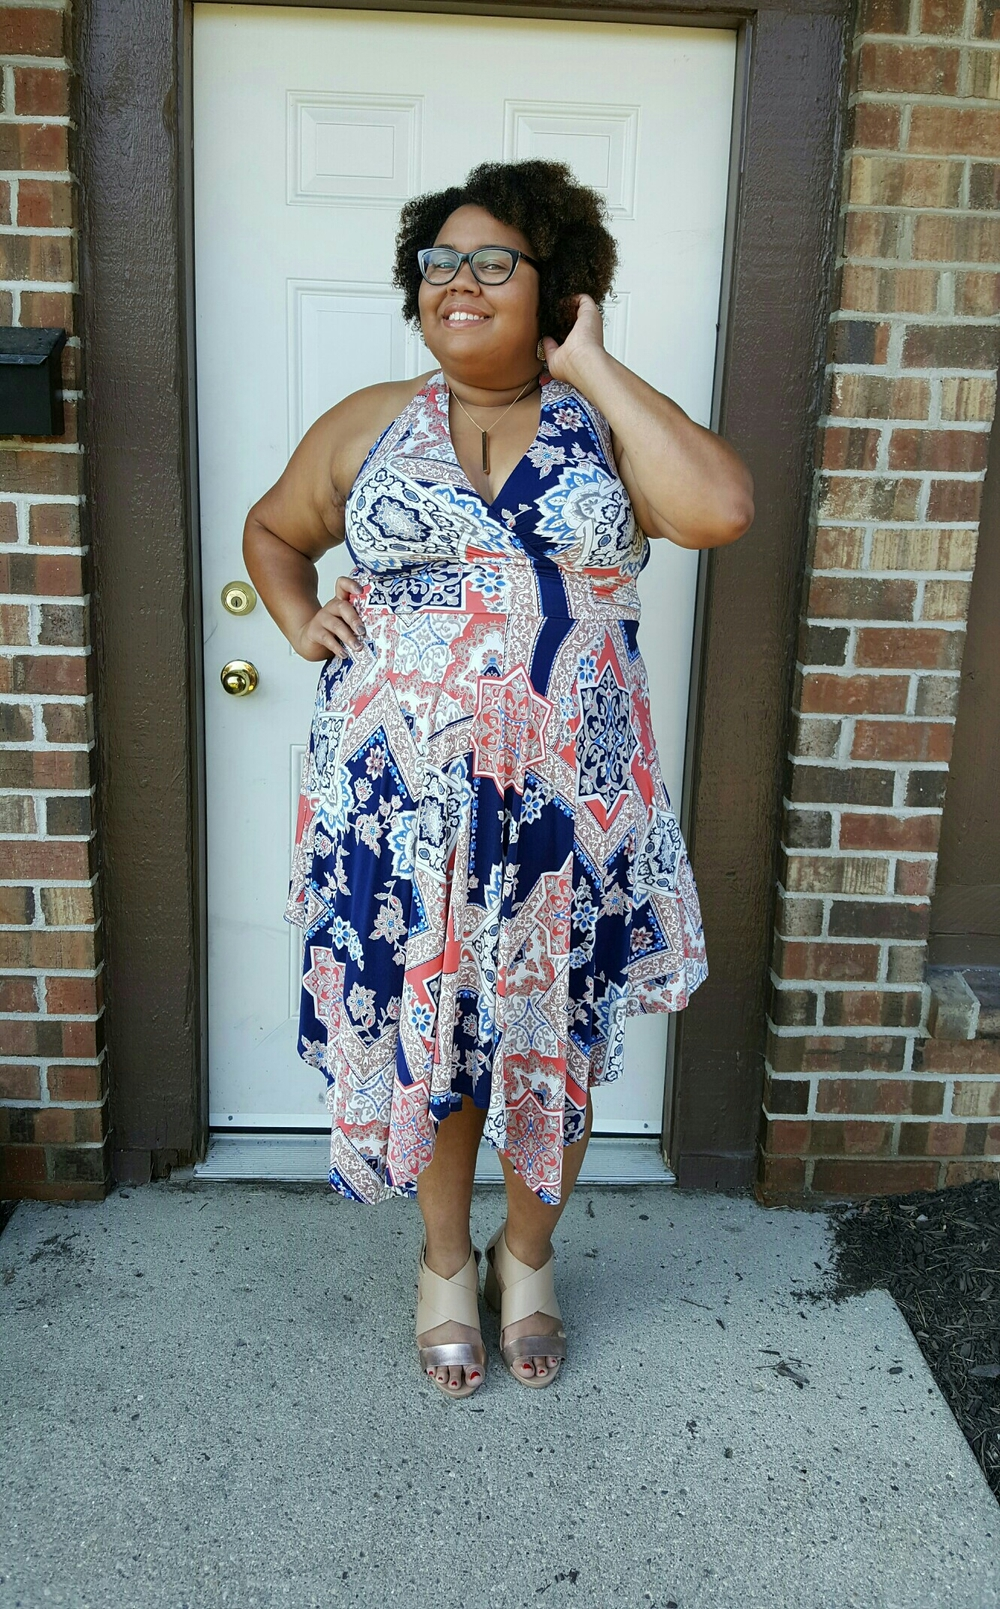 Flowy fly-away hem makes for a flirty look.